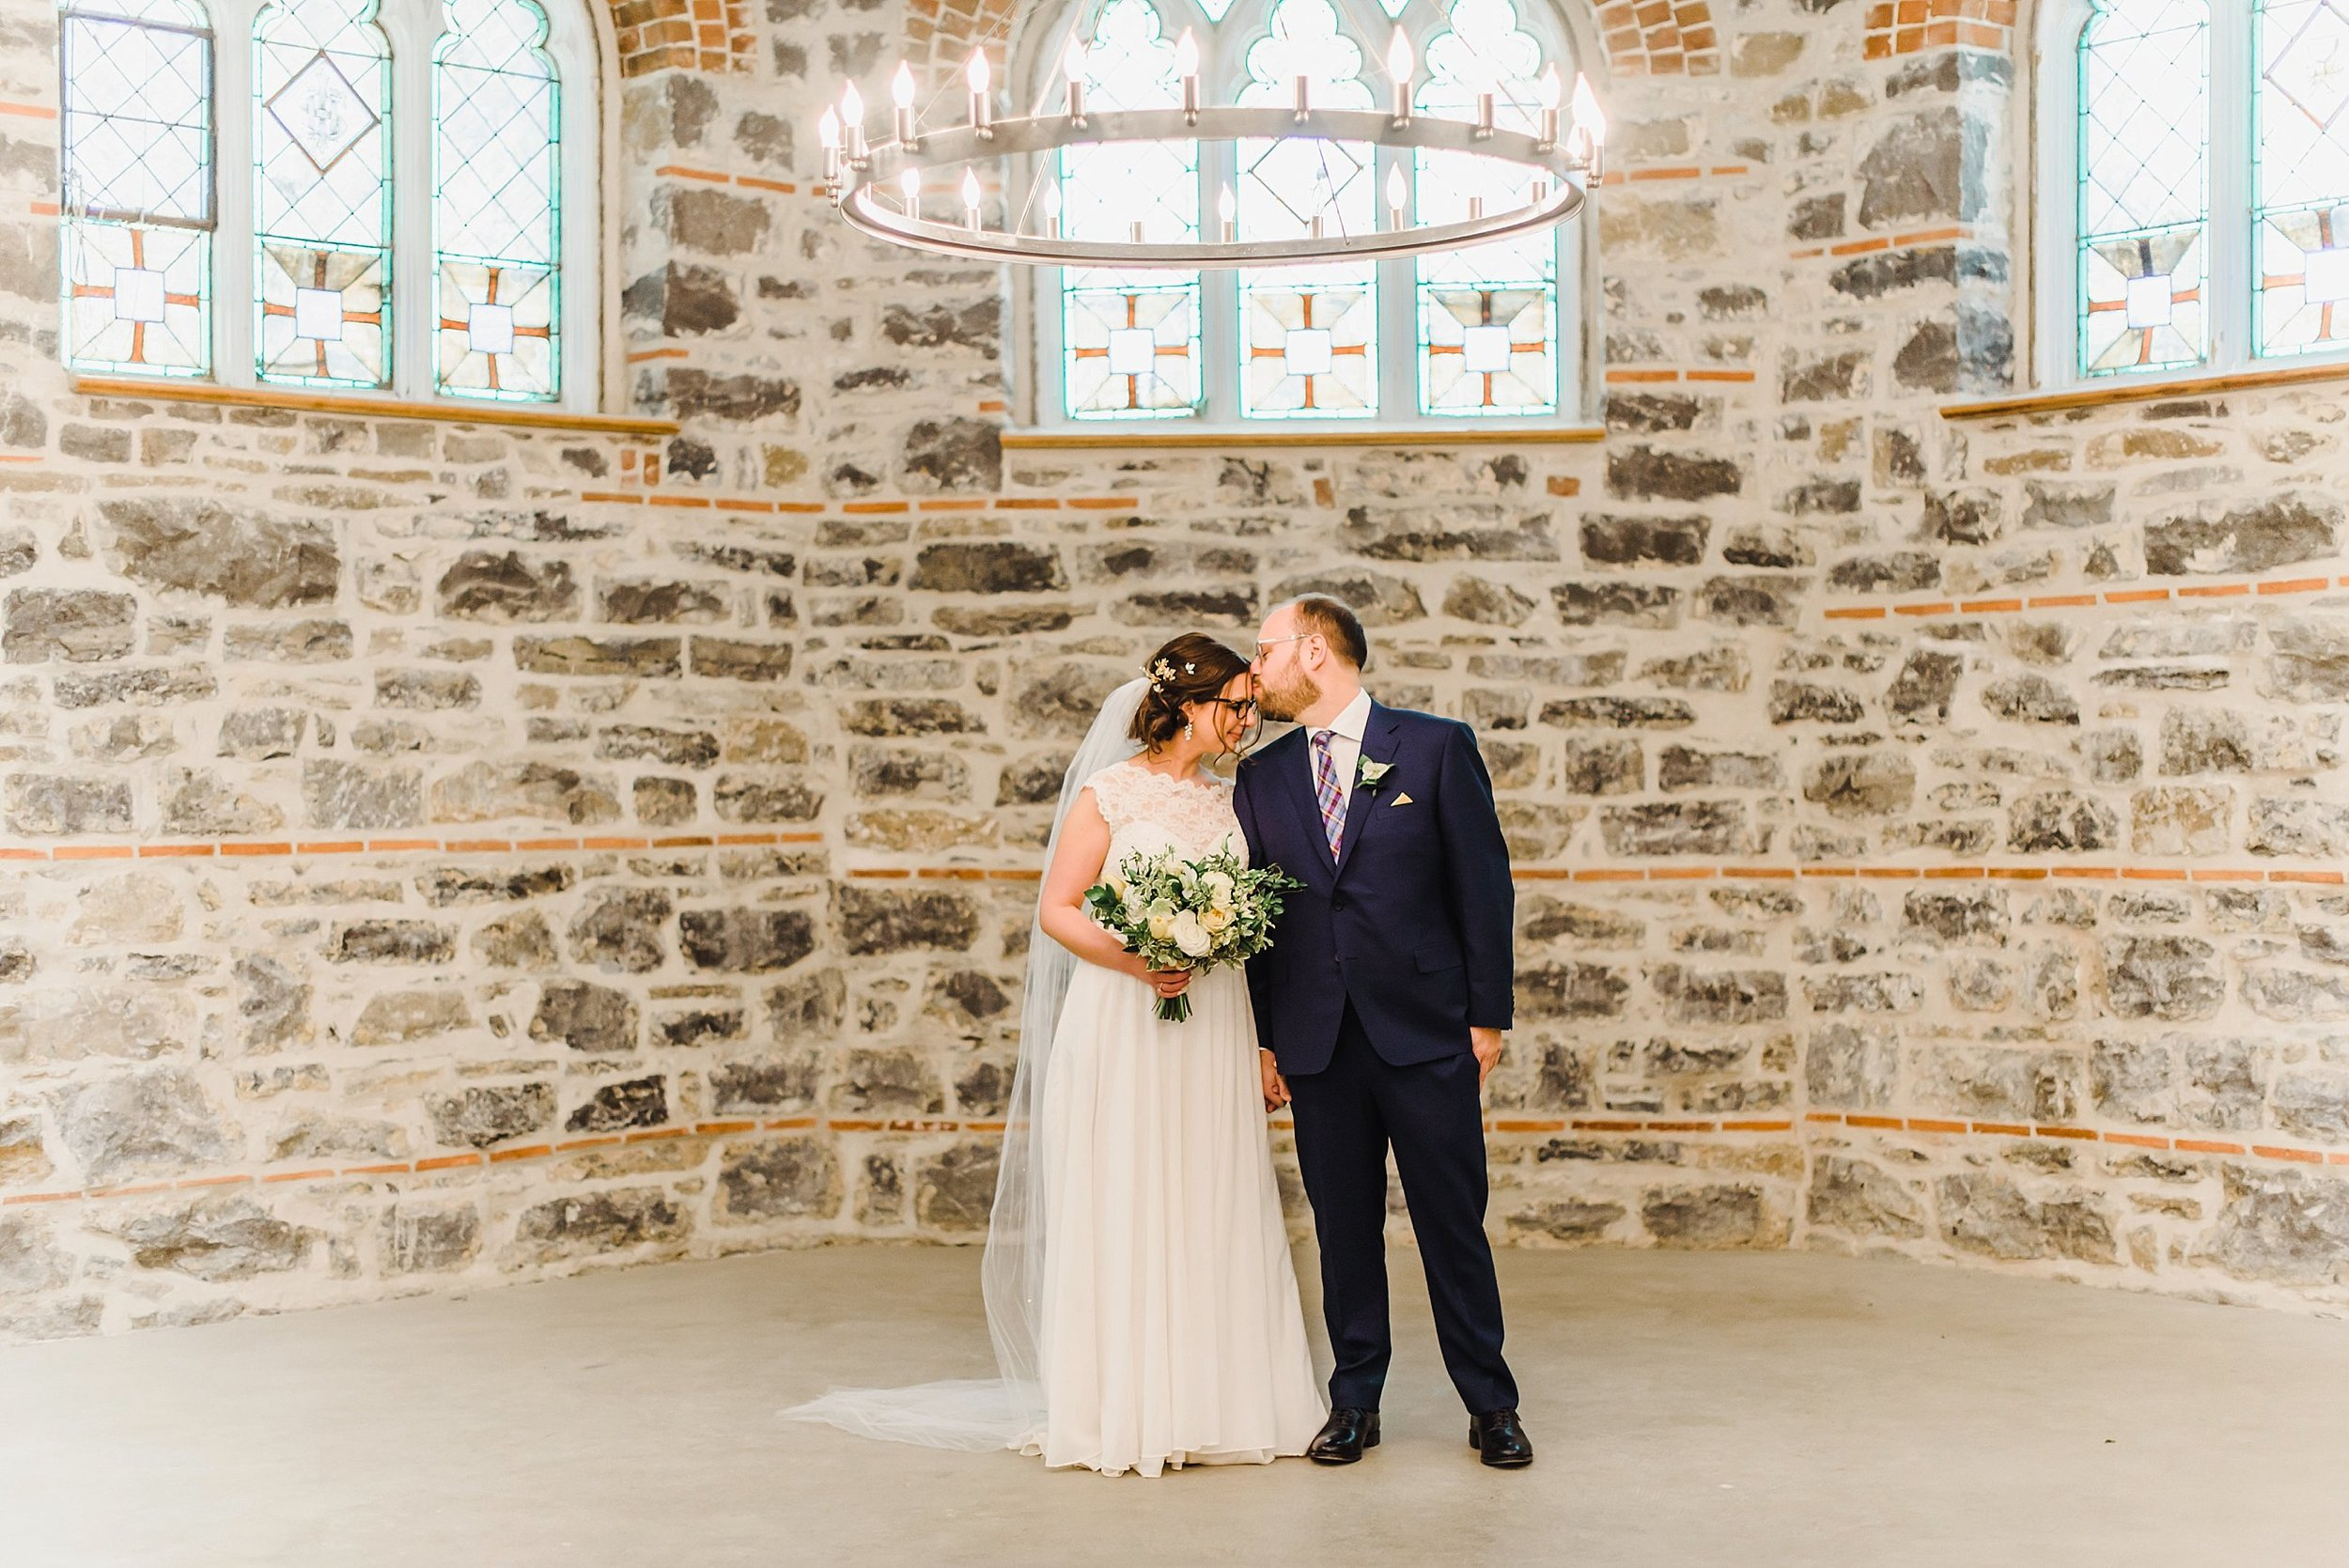 light airy indie fine art ottawa wedding photographer | Ali and Batoul Photography_0043.jpg